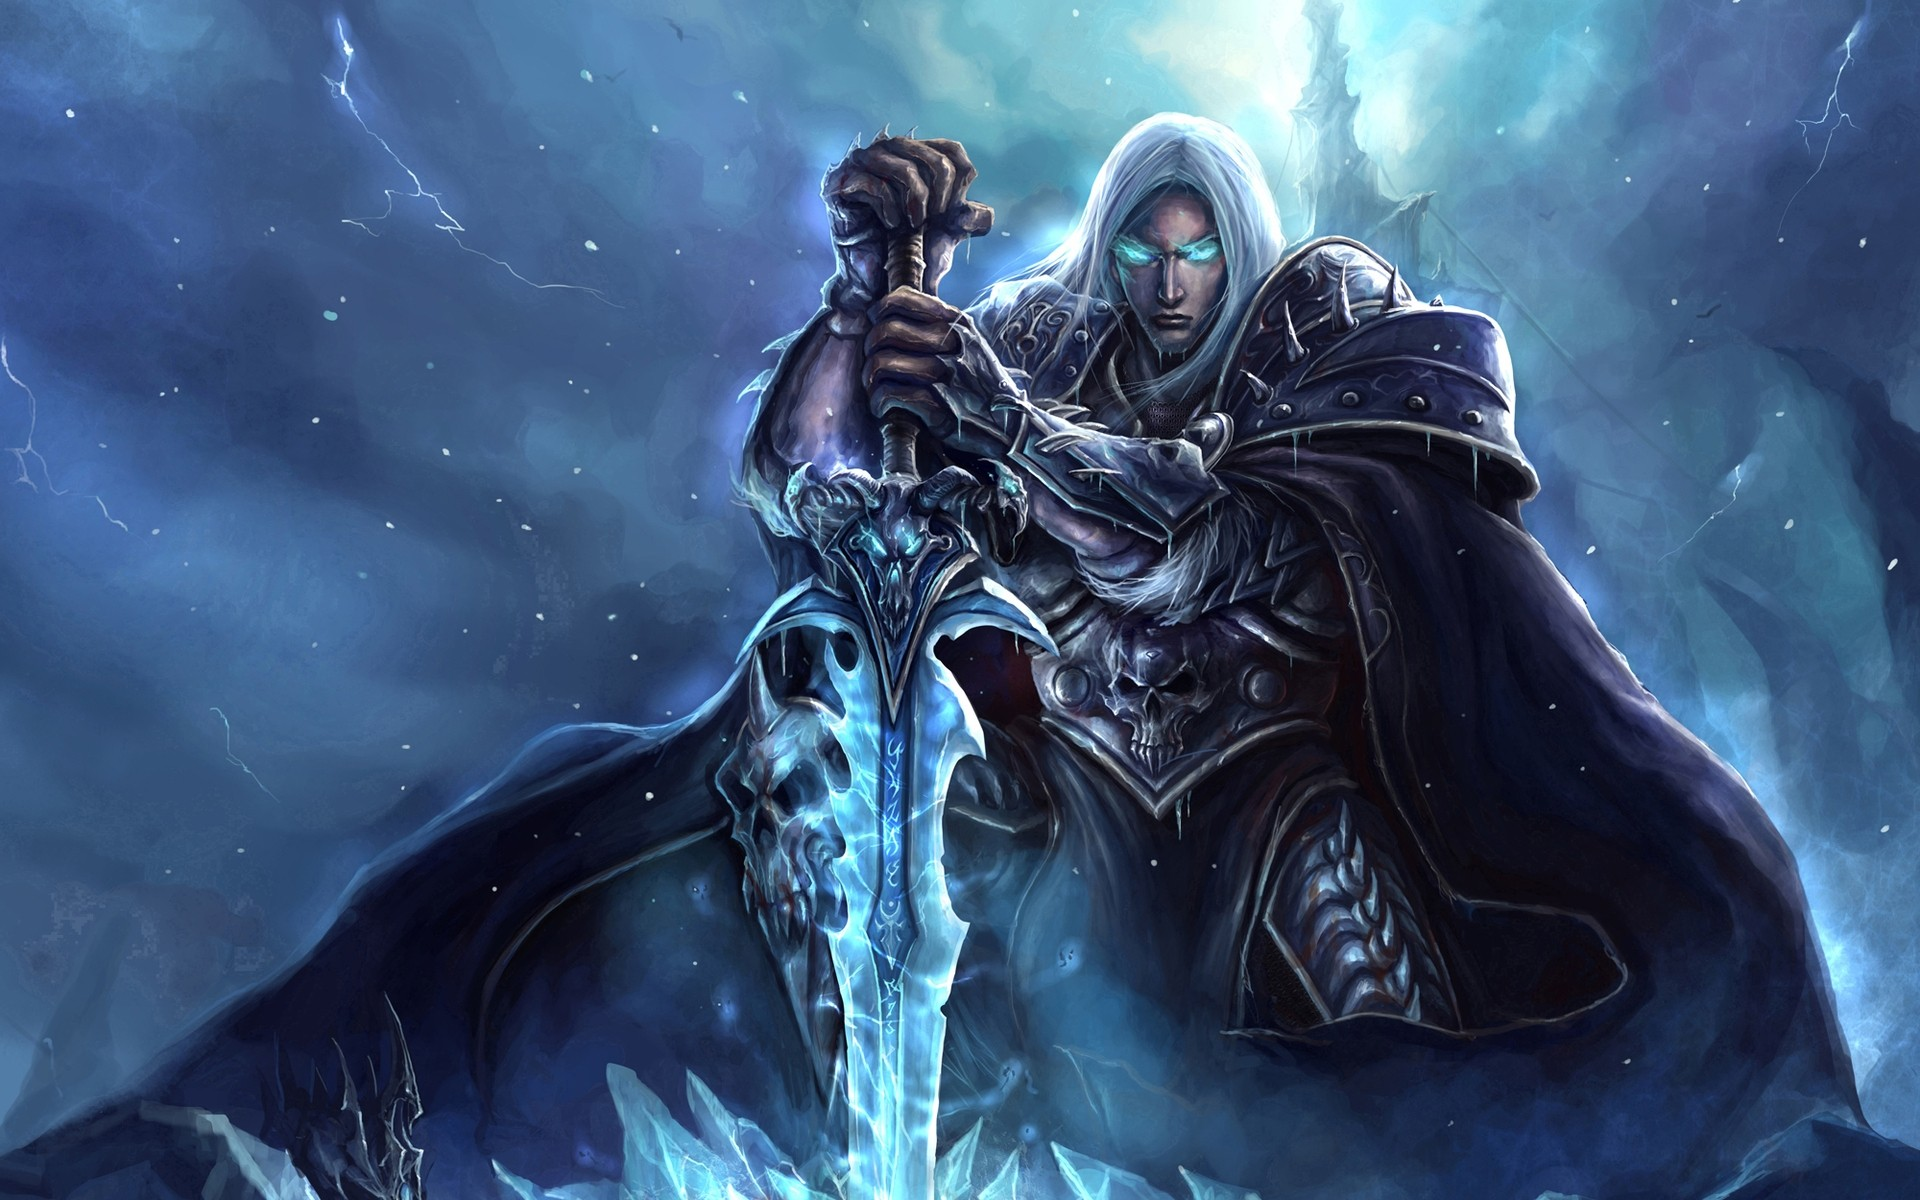 World of Warcraft Lich King Art - Android wallpapers